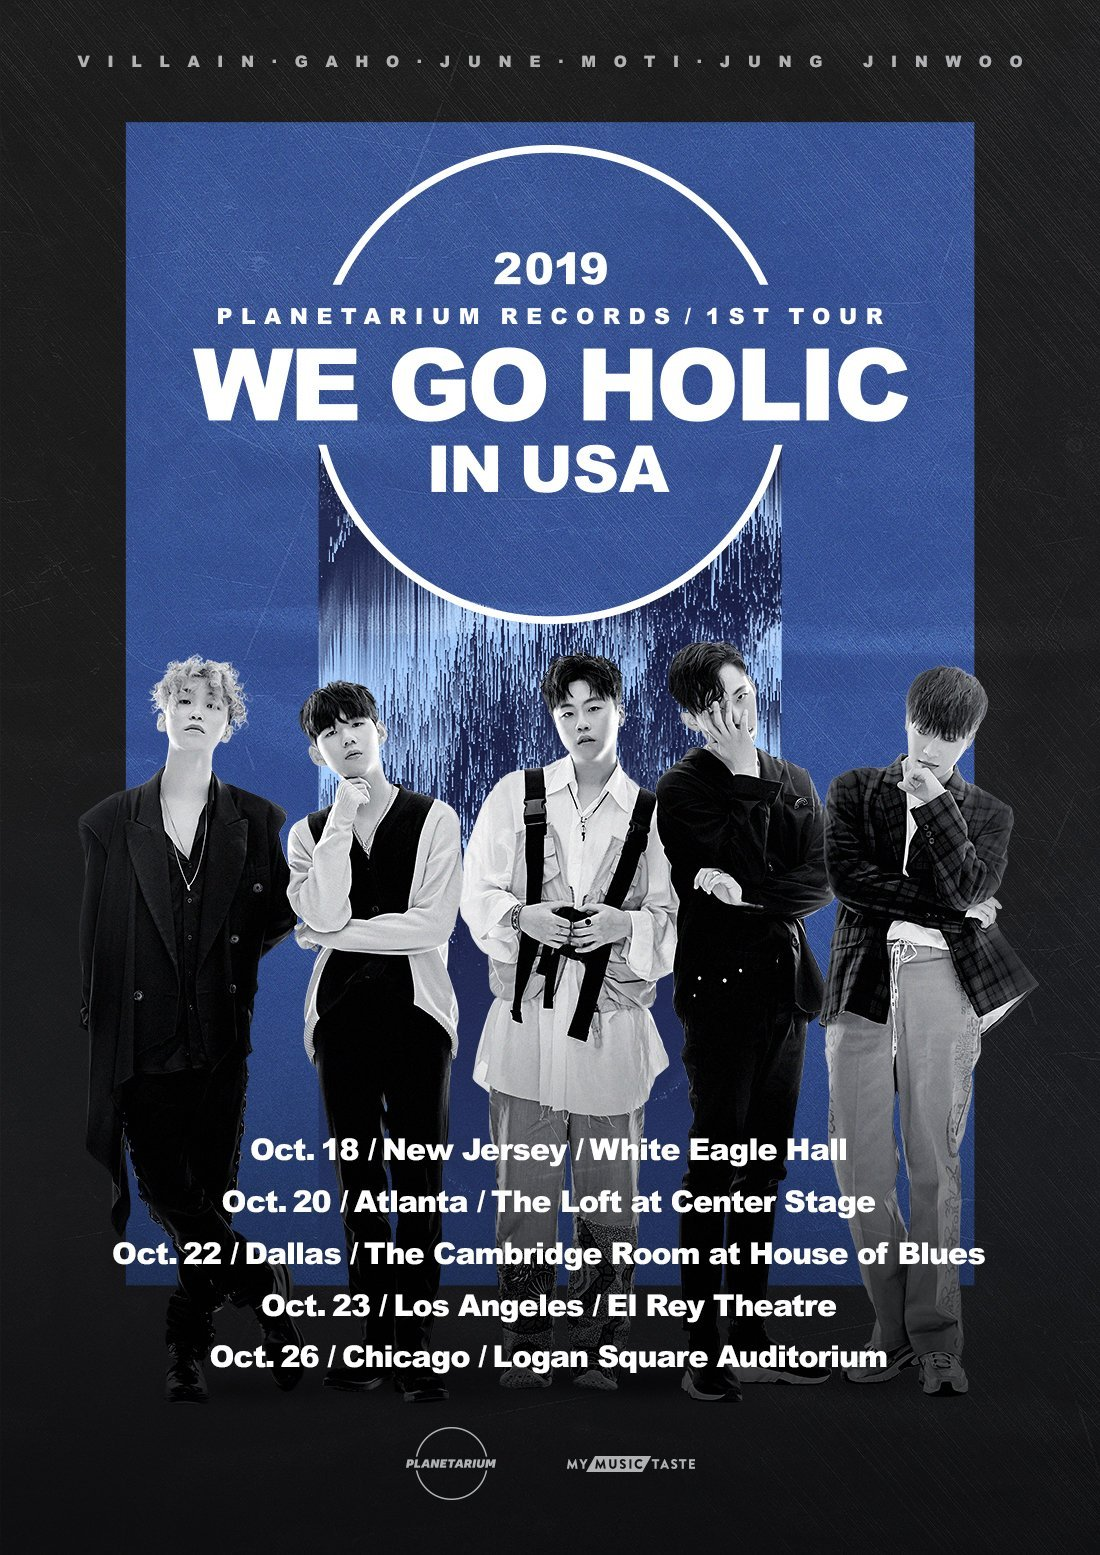 Get Ready For Planetarium Records: 2019 PLT 'WE GO HOLIC' IN